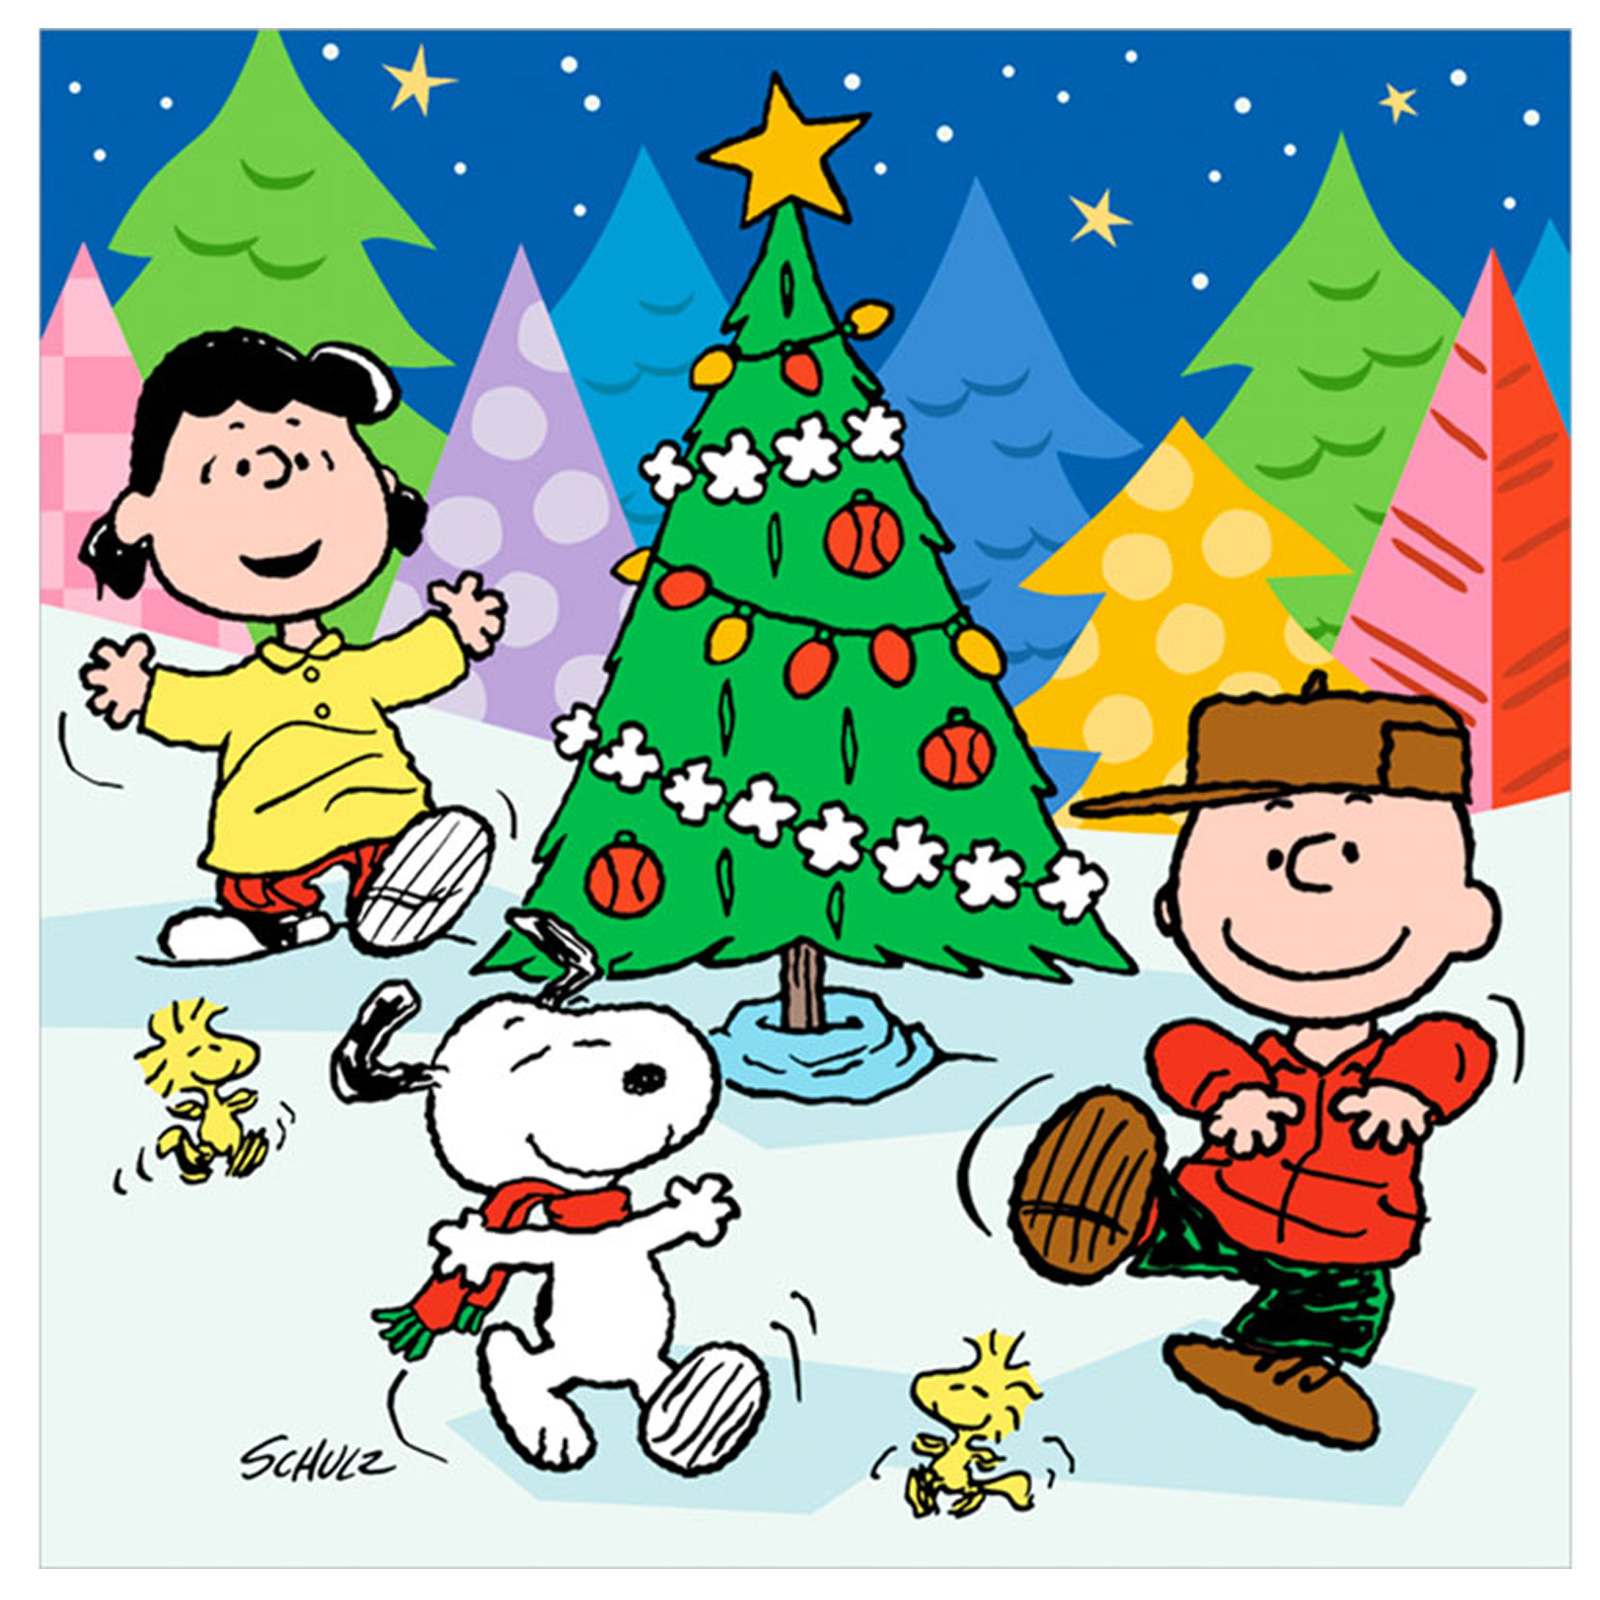 Peanuts christmas wallpaper 2017 grasscloth wallpaper - Free snoopy images ...